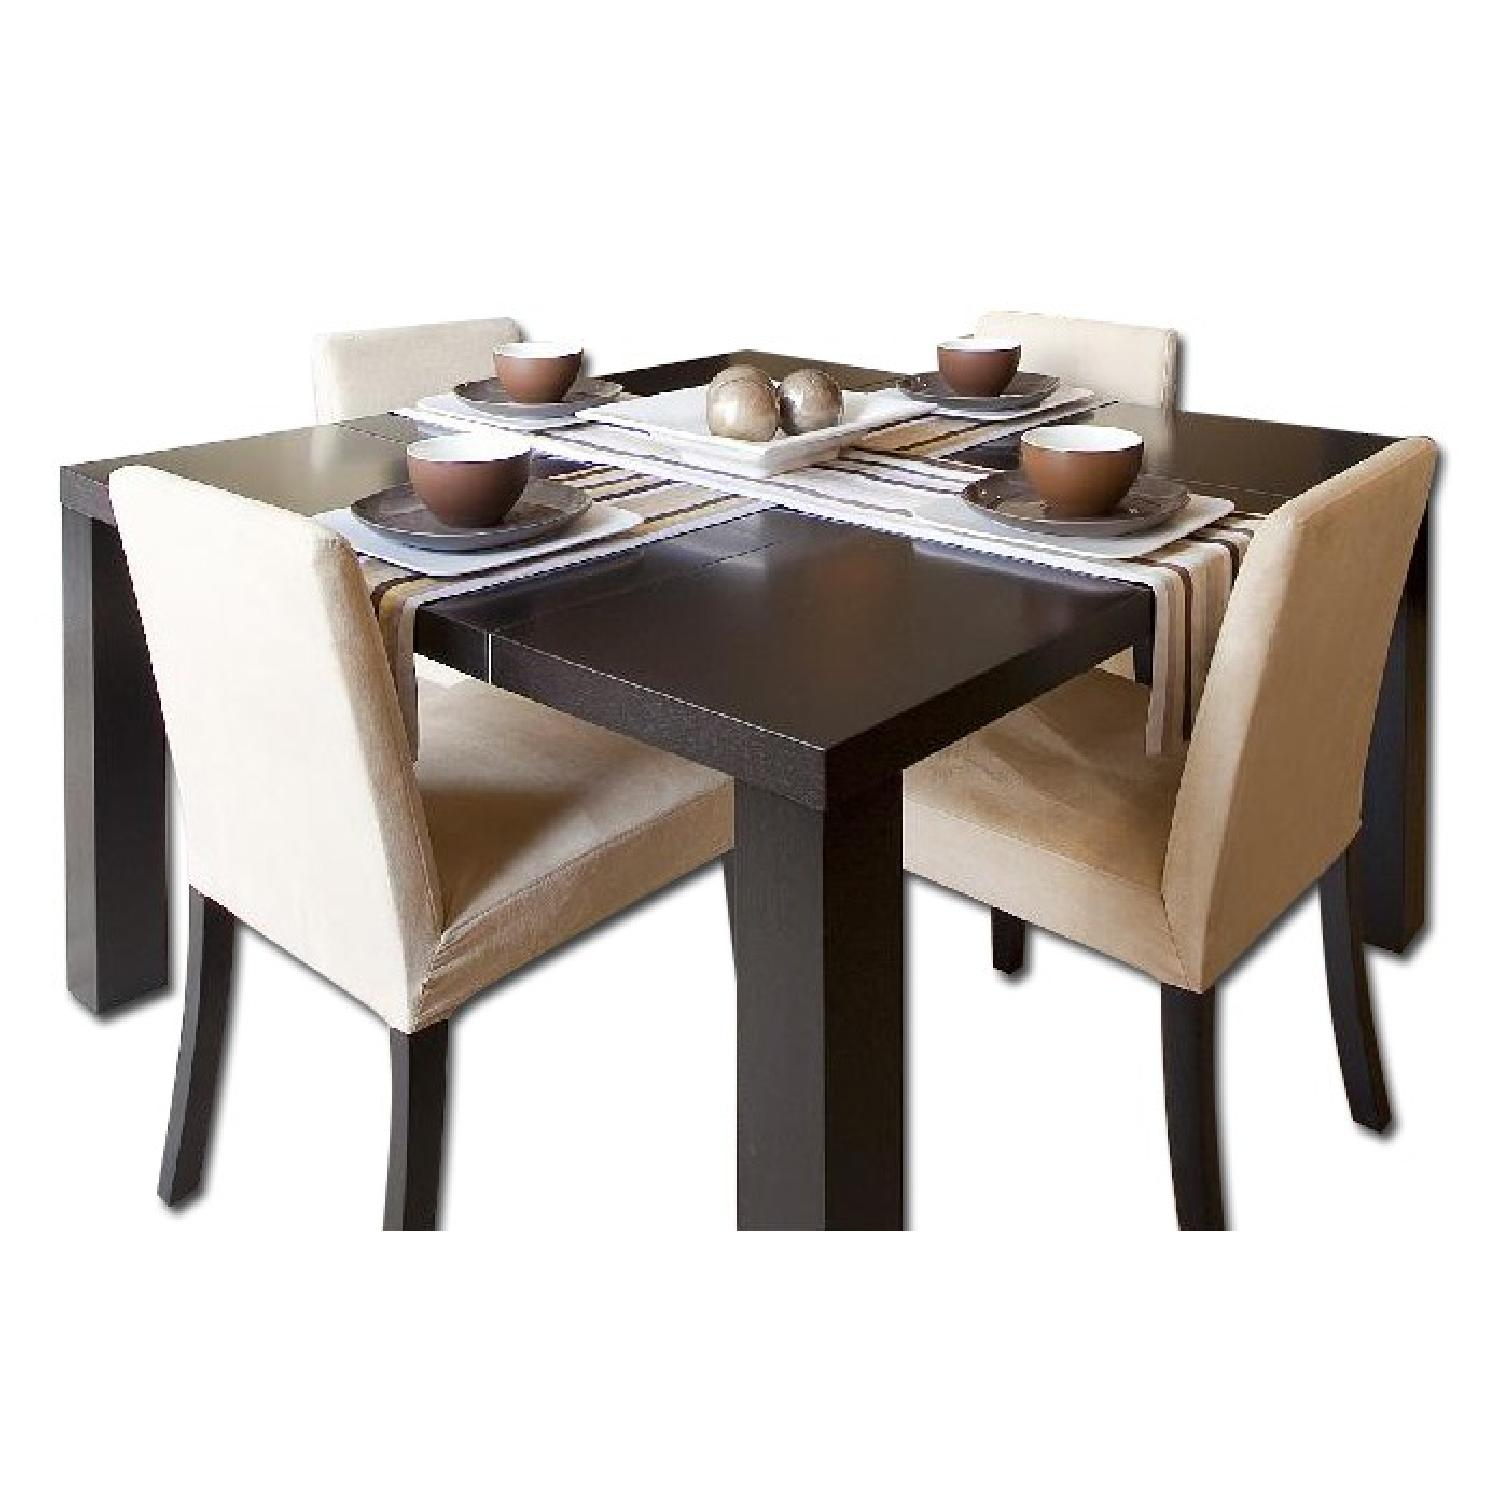 Boconcept dining table w 4 chairs aptdeco - Tafel boconcept ...